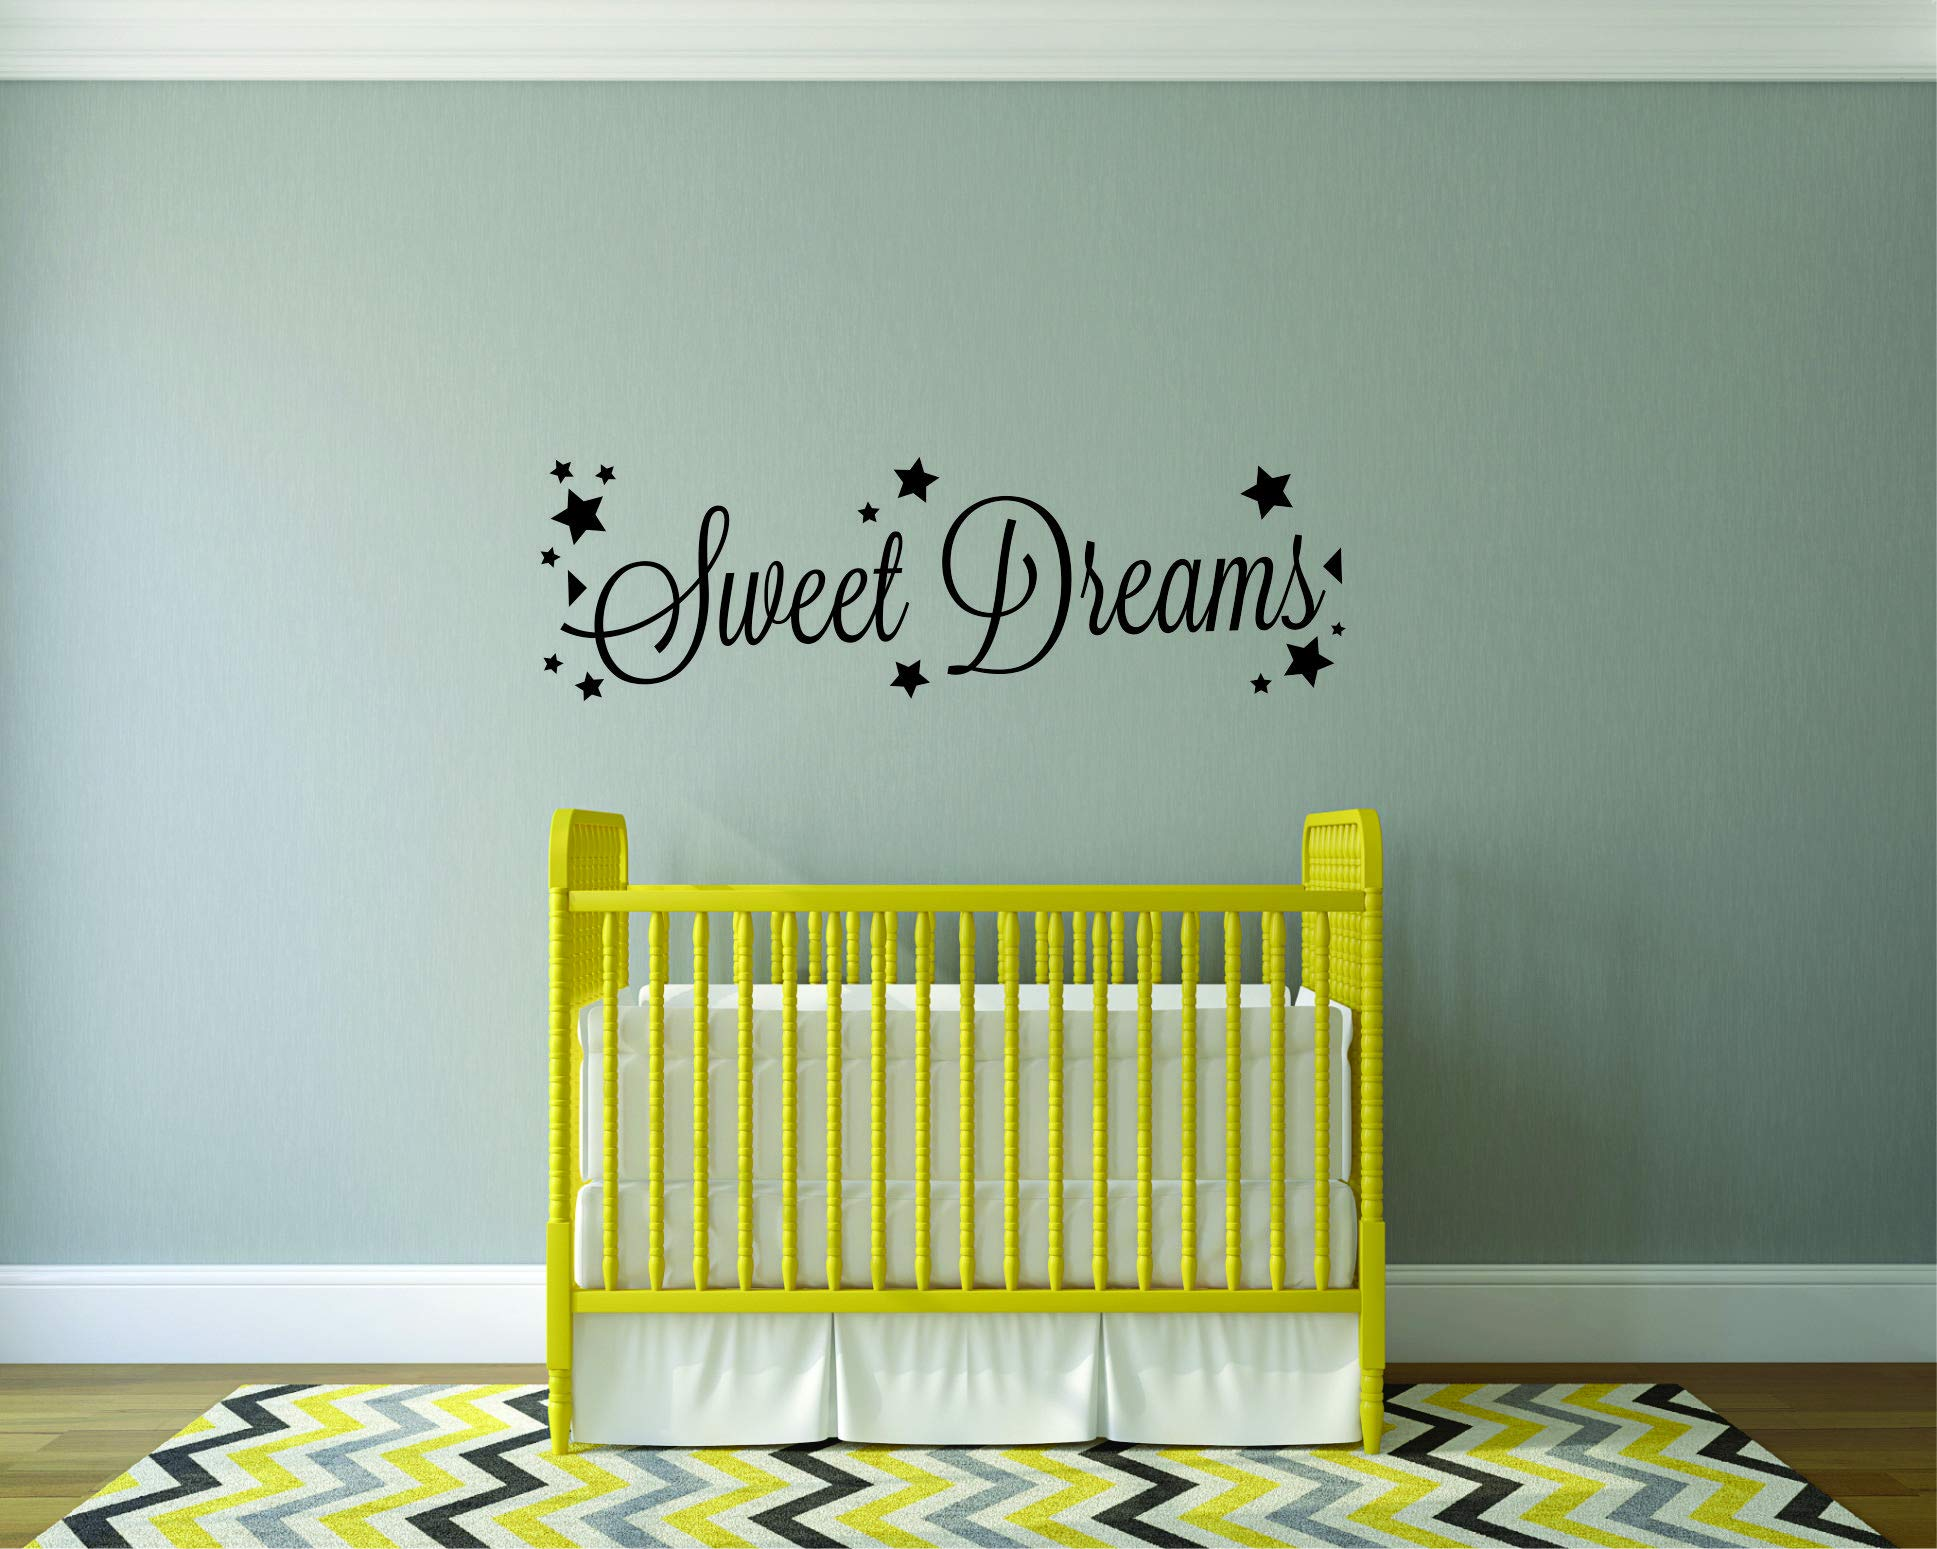 Decal – Vinyl Wall Sticker : Sweet Dreams Quote Home Living Room Bedroom Decor Baby Nursery Good Night Bedtime Babies Rooms Decorations Decor Size: 8 Inches X 30 Inches - - Amazon.com